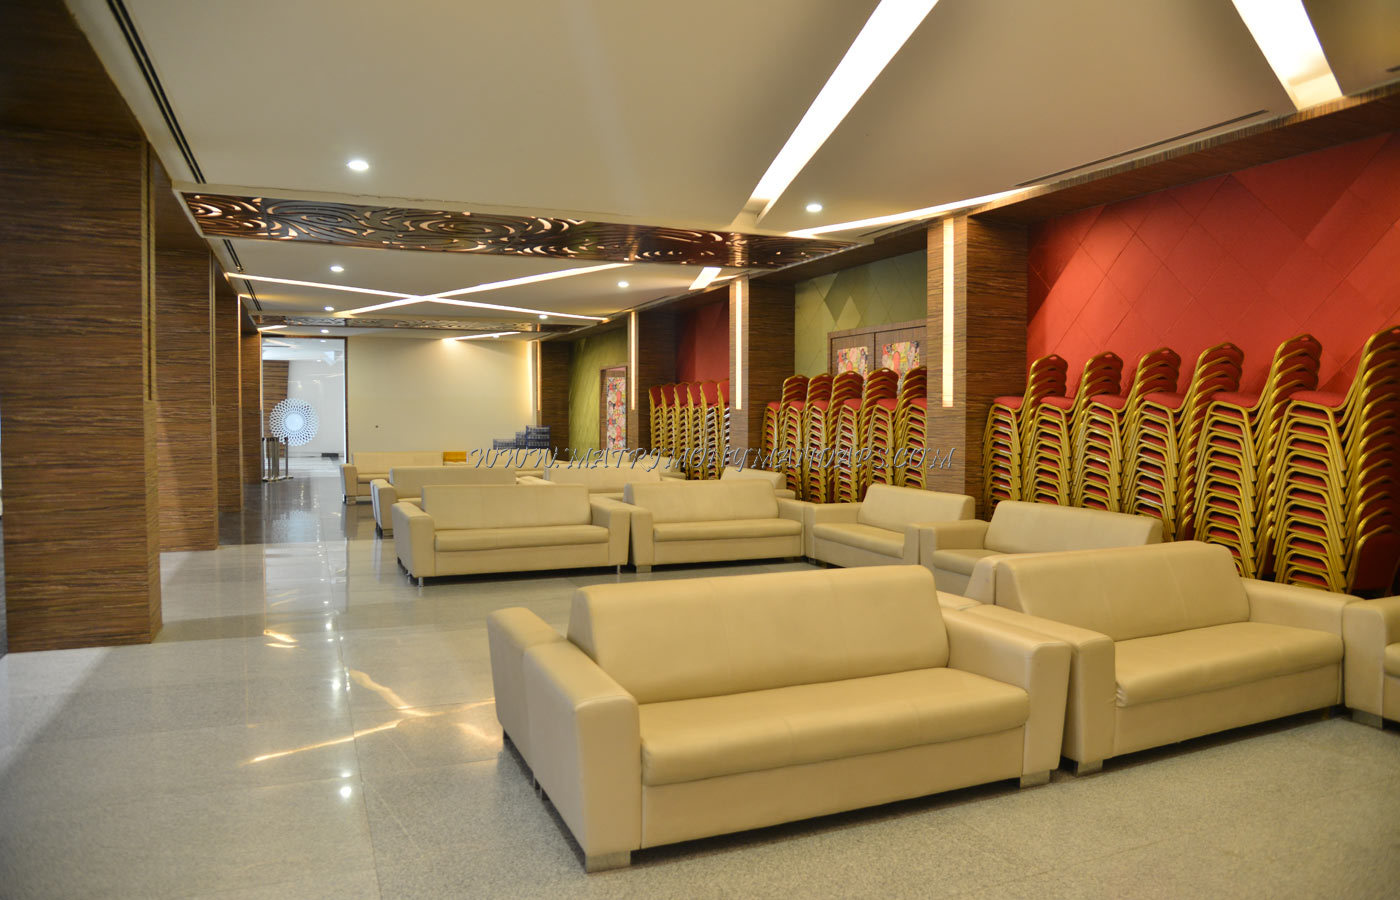 Find the availability of the Shree Convention Hall 1 (A/C) in Kompally, Hyderabad and avail special offers